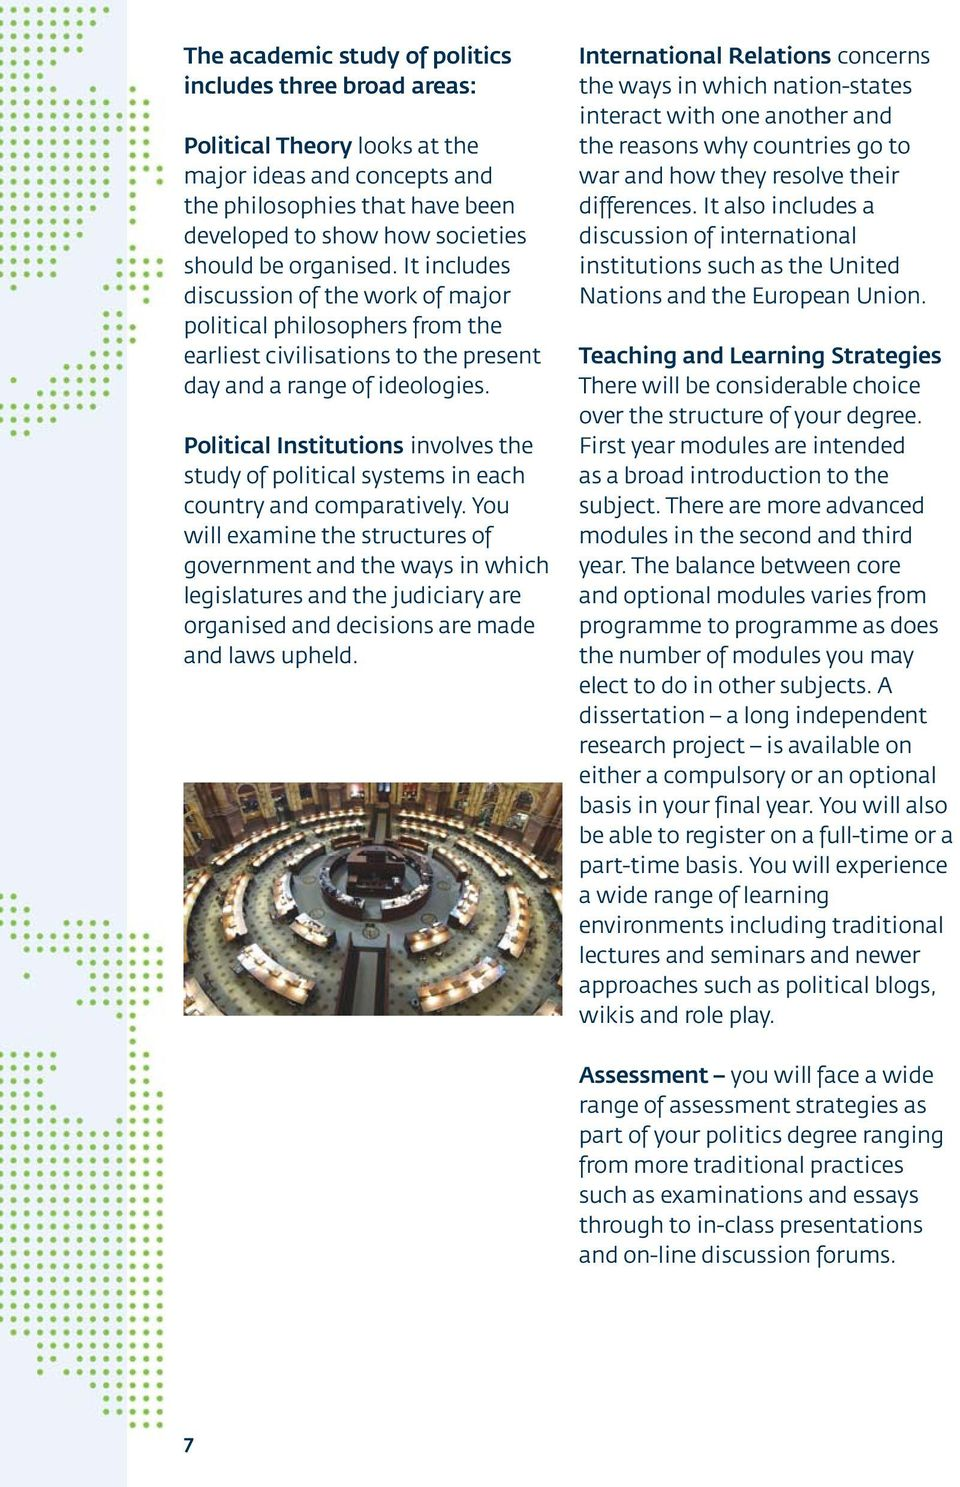 Political Institutions involves the study of political systems in each country and comparatively.